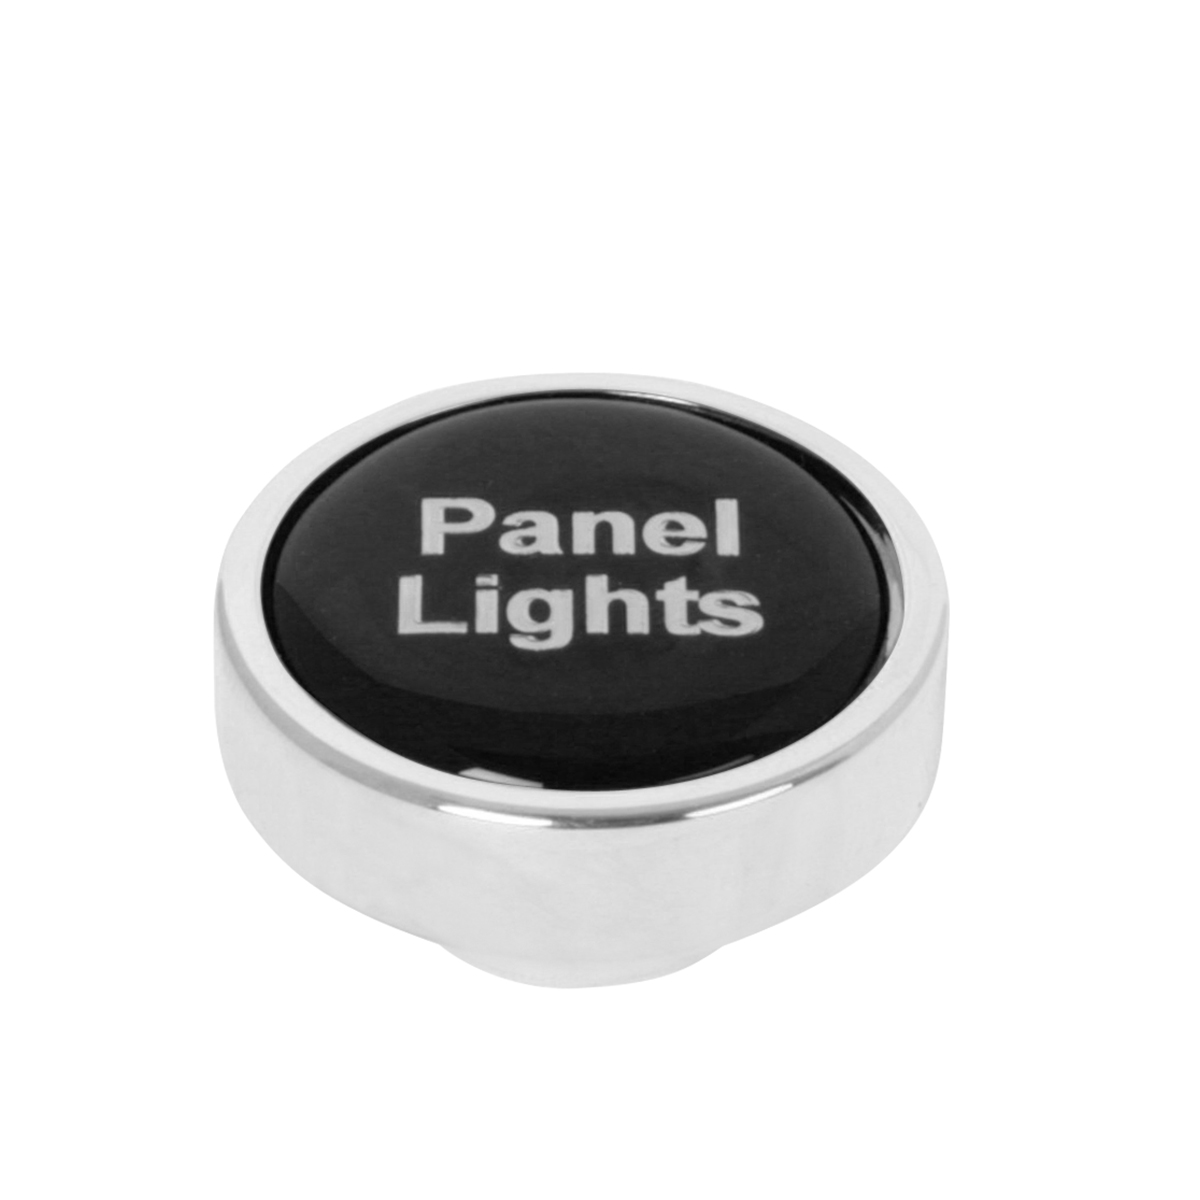 96300 Dashboard Control Knob w/ Panel Lights Script